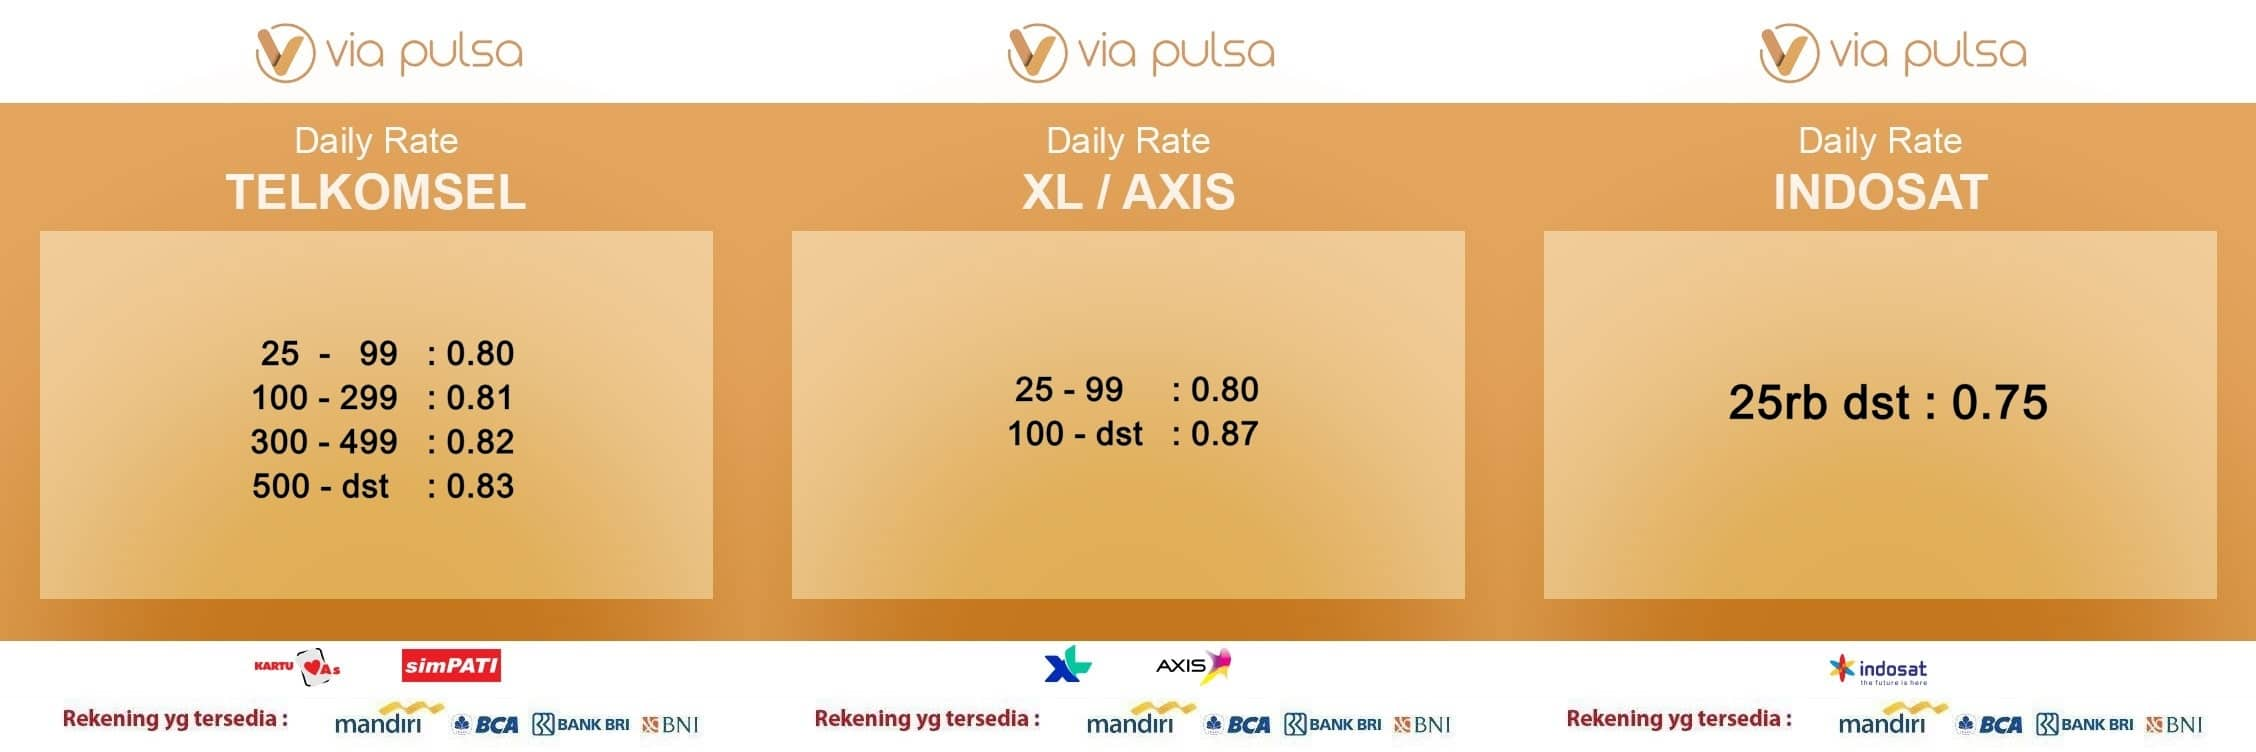 Rate Convert Pulsa Telkomsel, XL/AXIS, Indosat Viapulsa